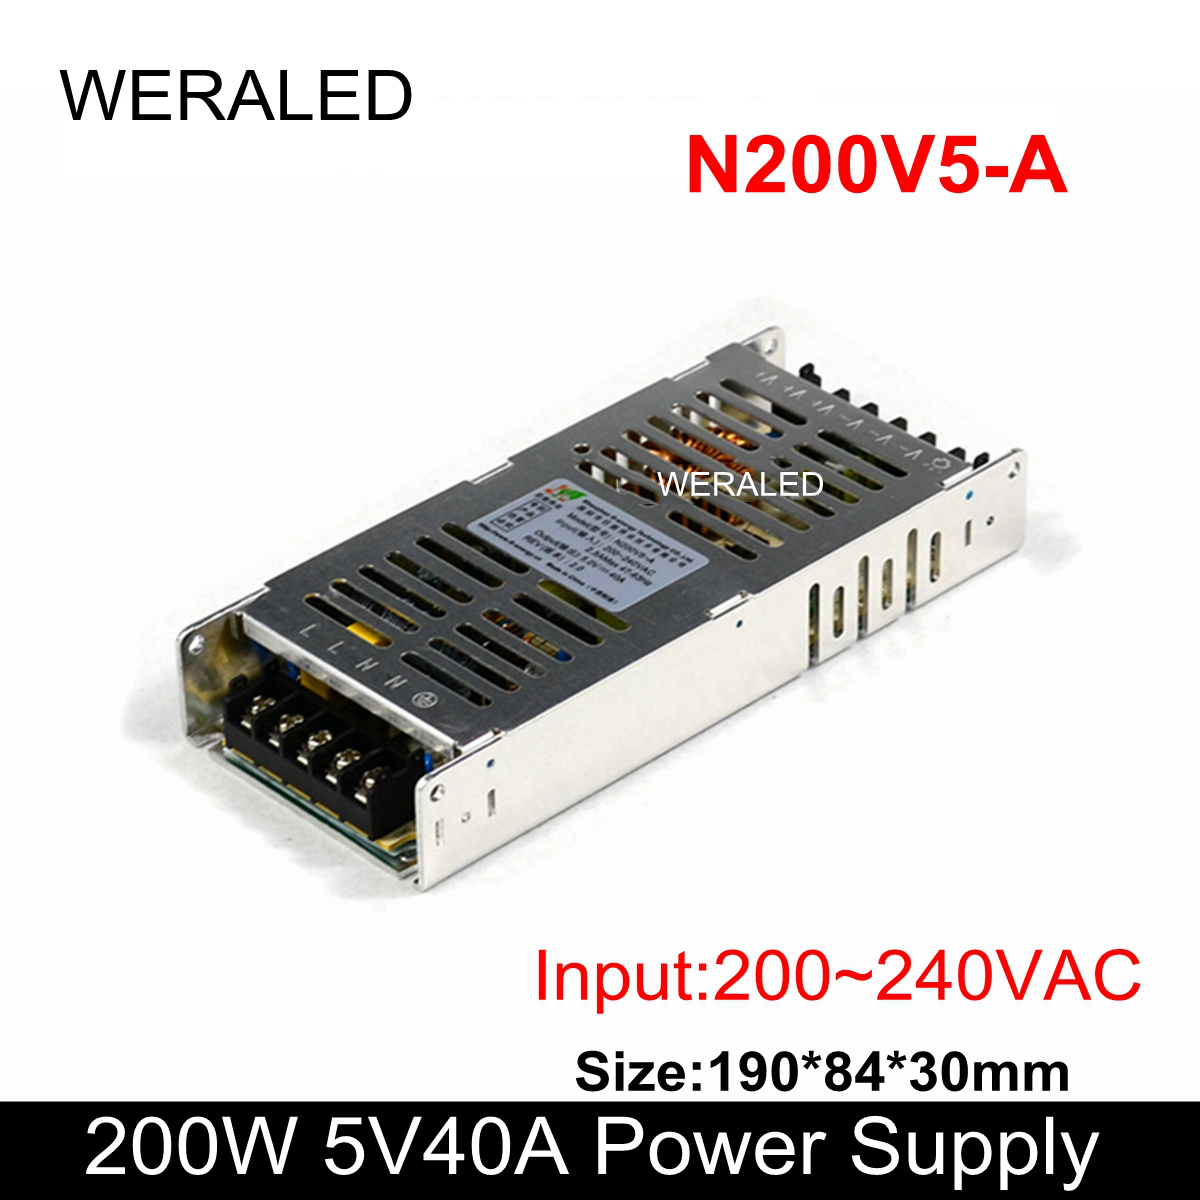 G-energy N200V5-A 200W LED Programmable Sign Display Power Supply,5V40A 200~240VAC Input Voltage PSU For P4 P5 P10 LED Signboard